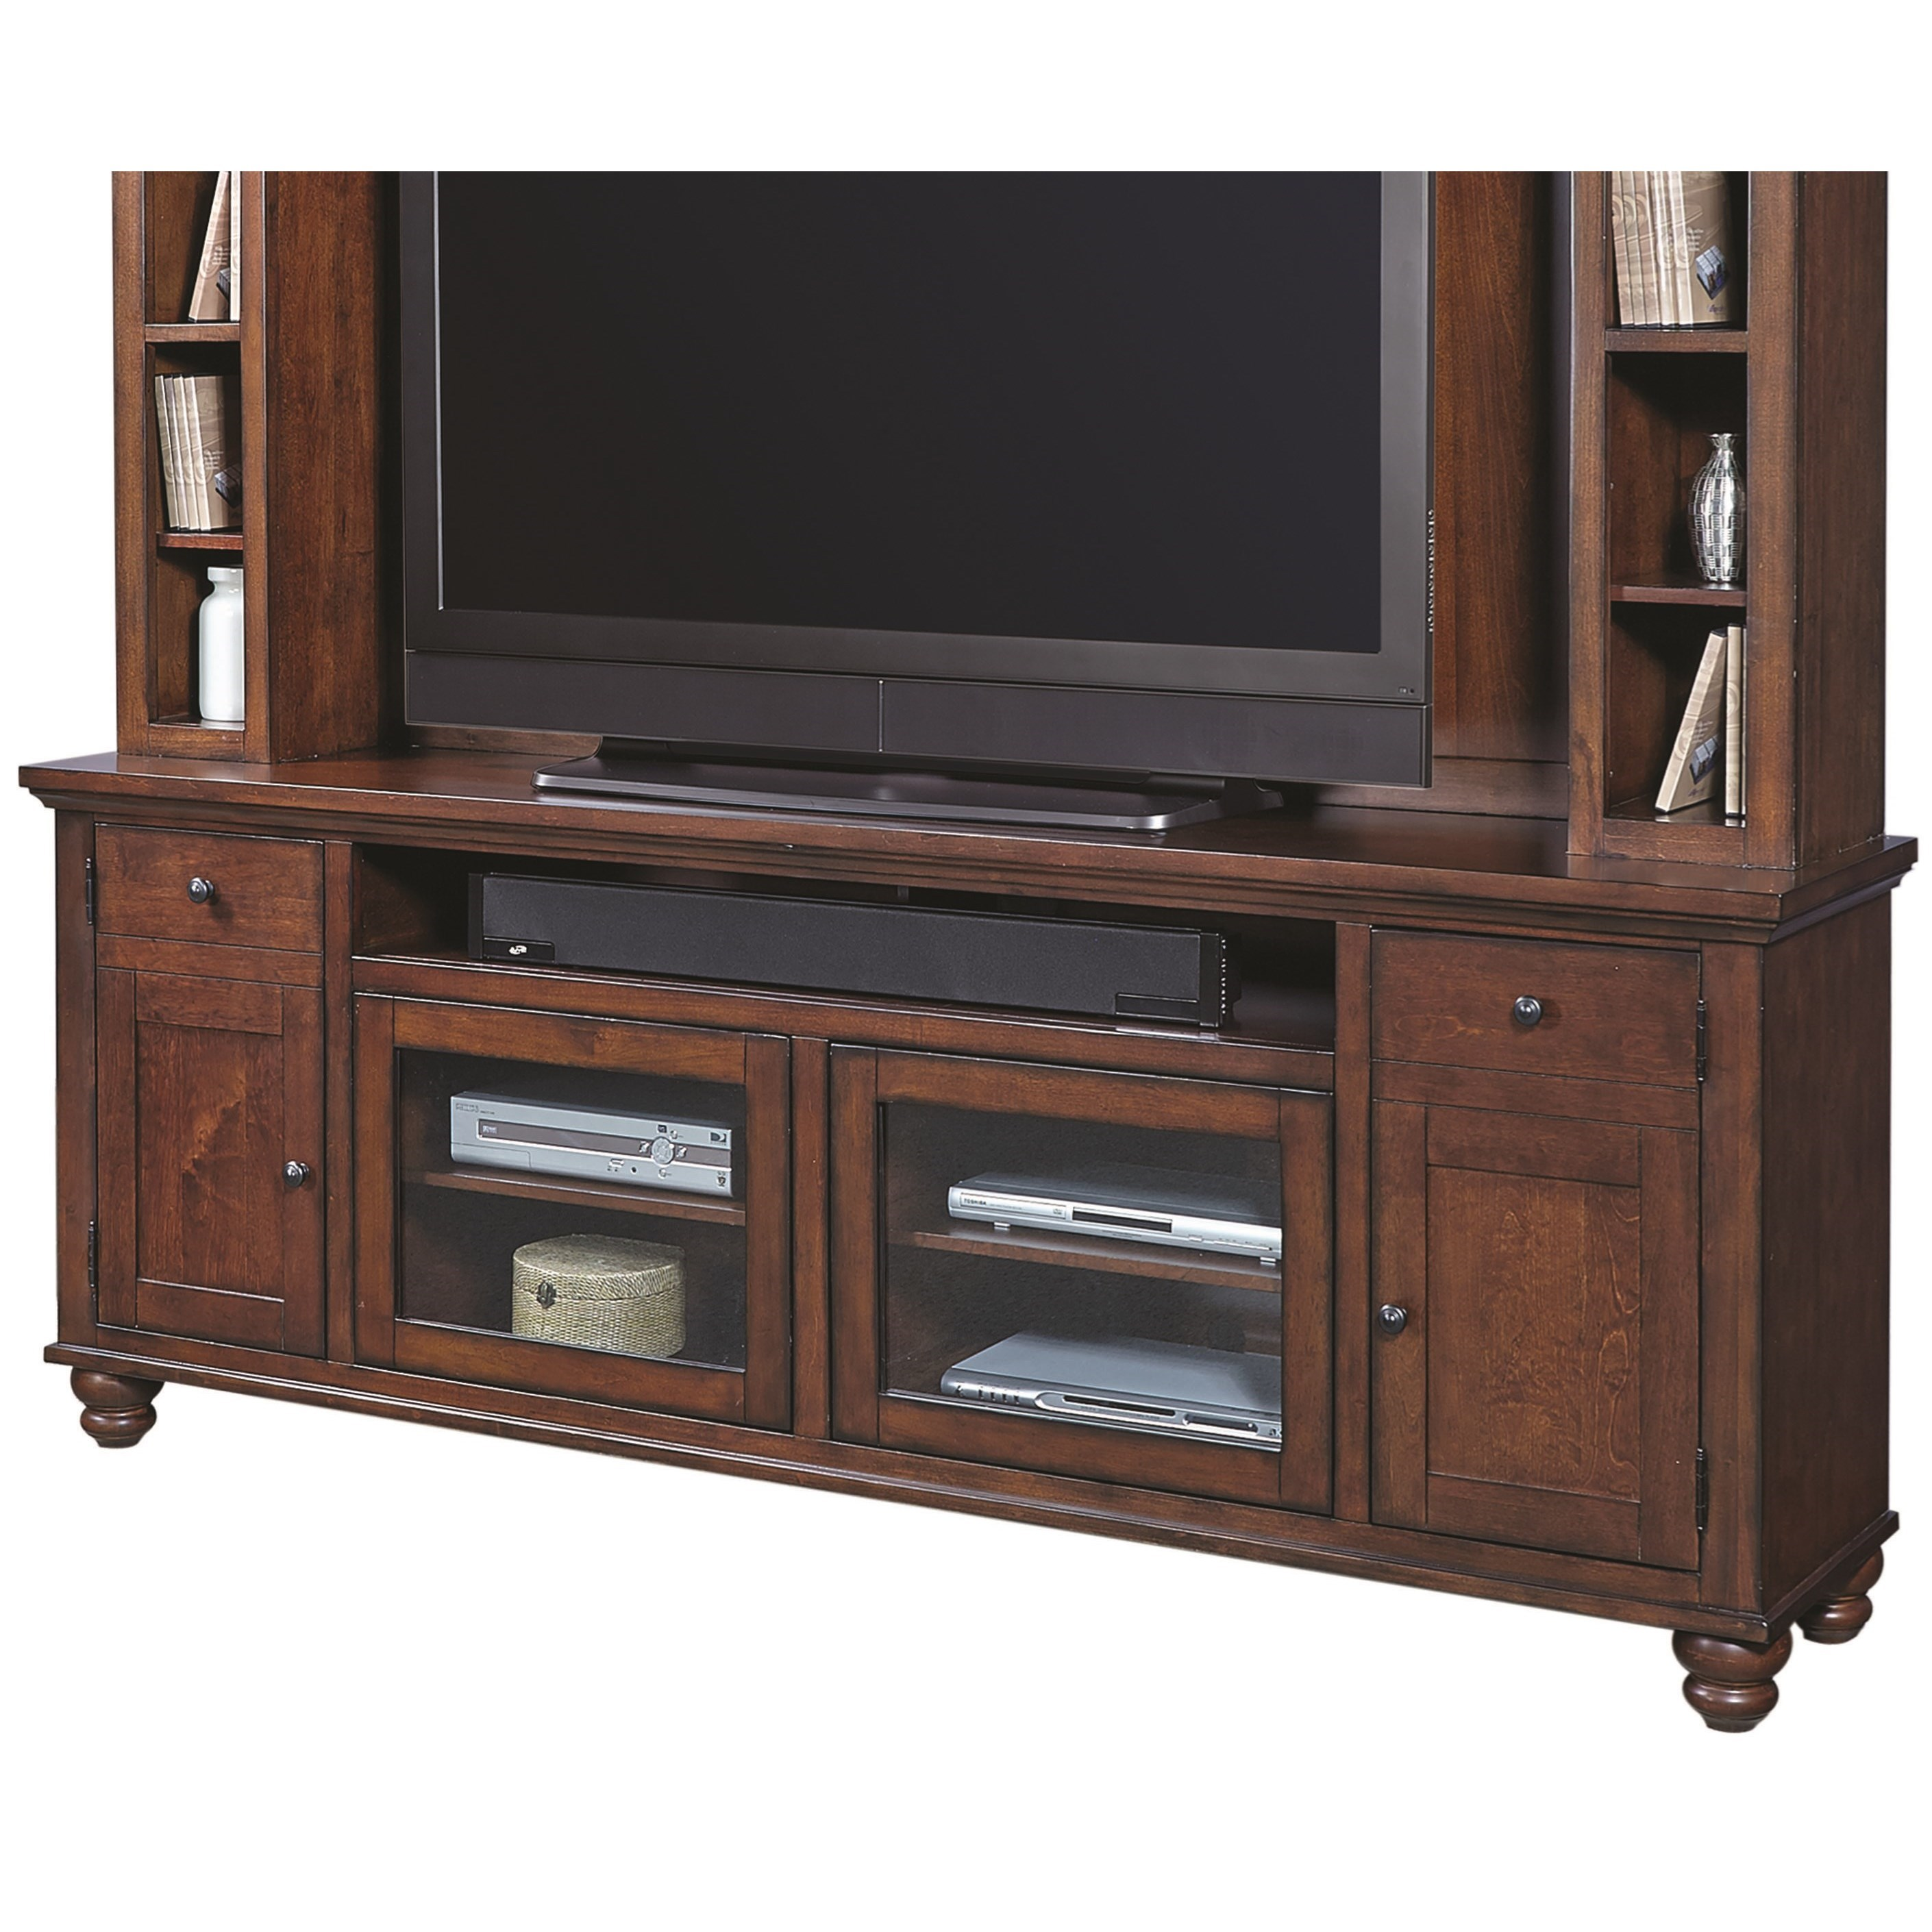 "Aspenhome Cambridge 85"" Console - Item Number: ICB-284-BCH"